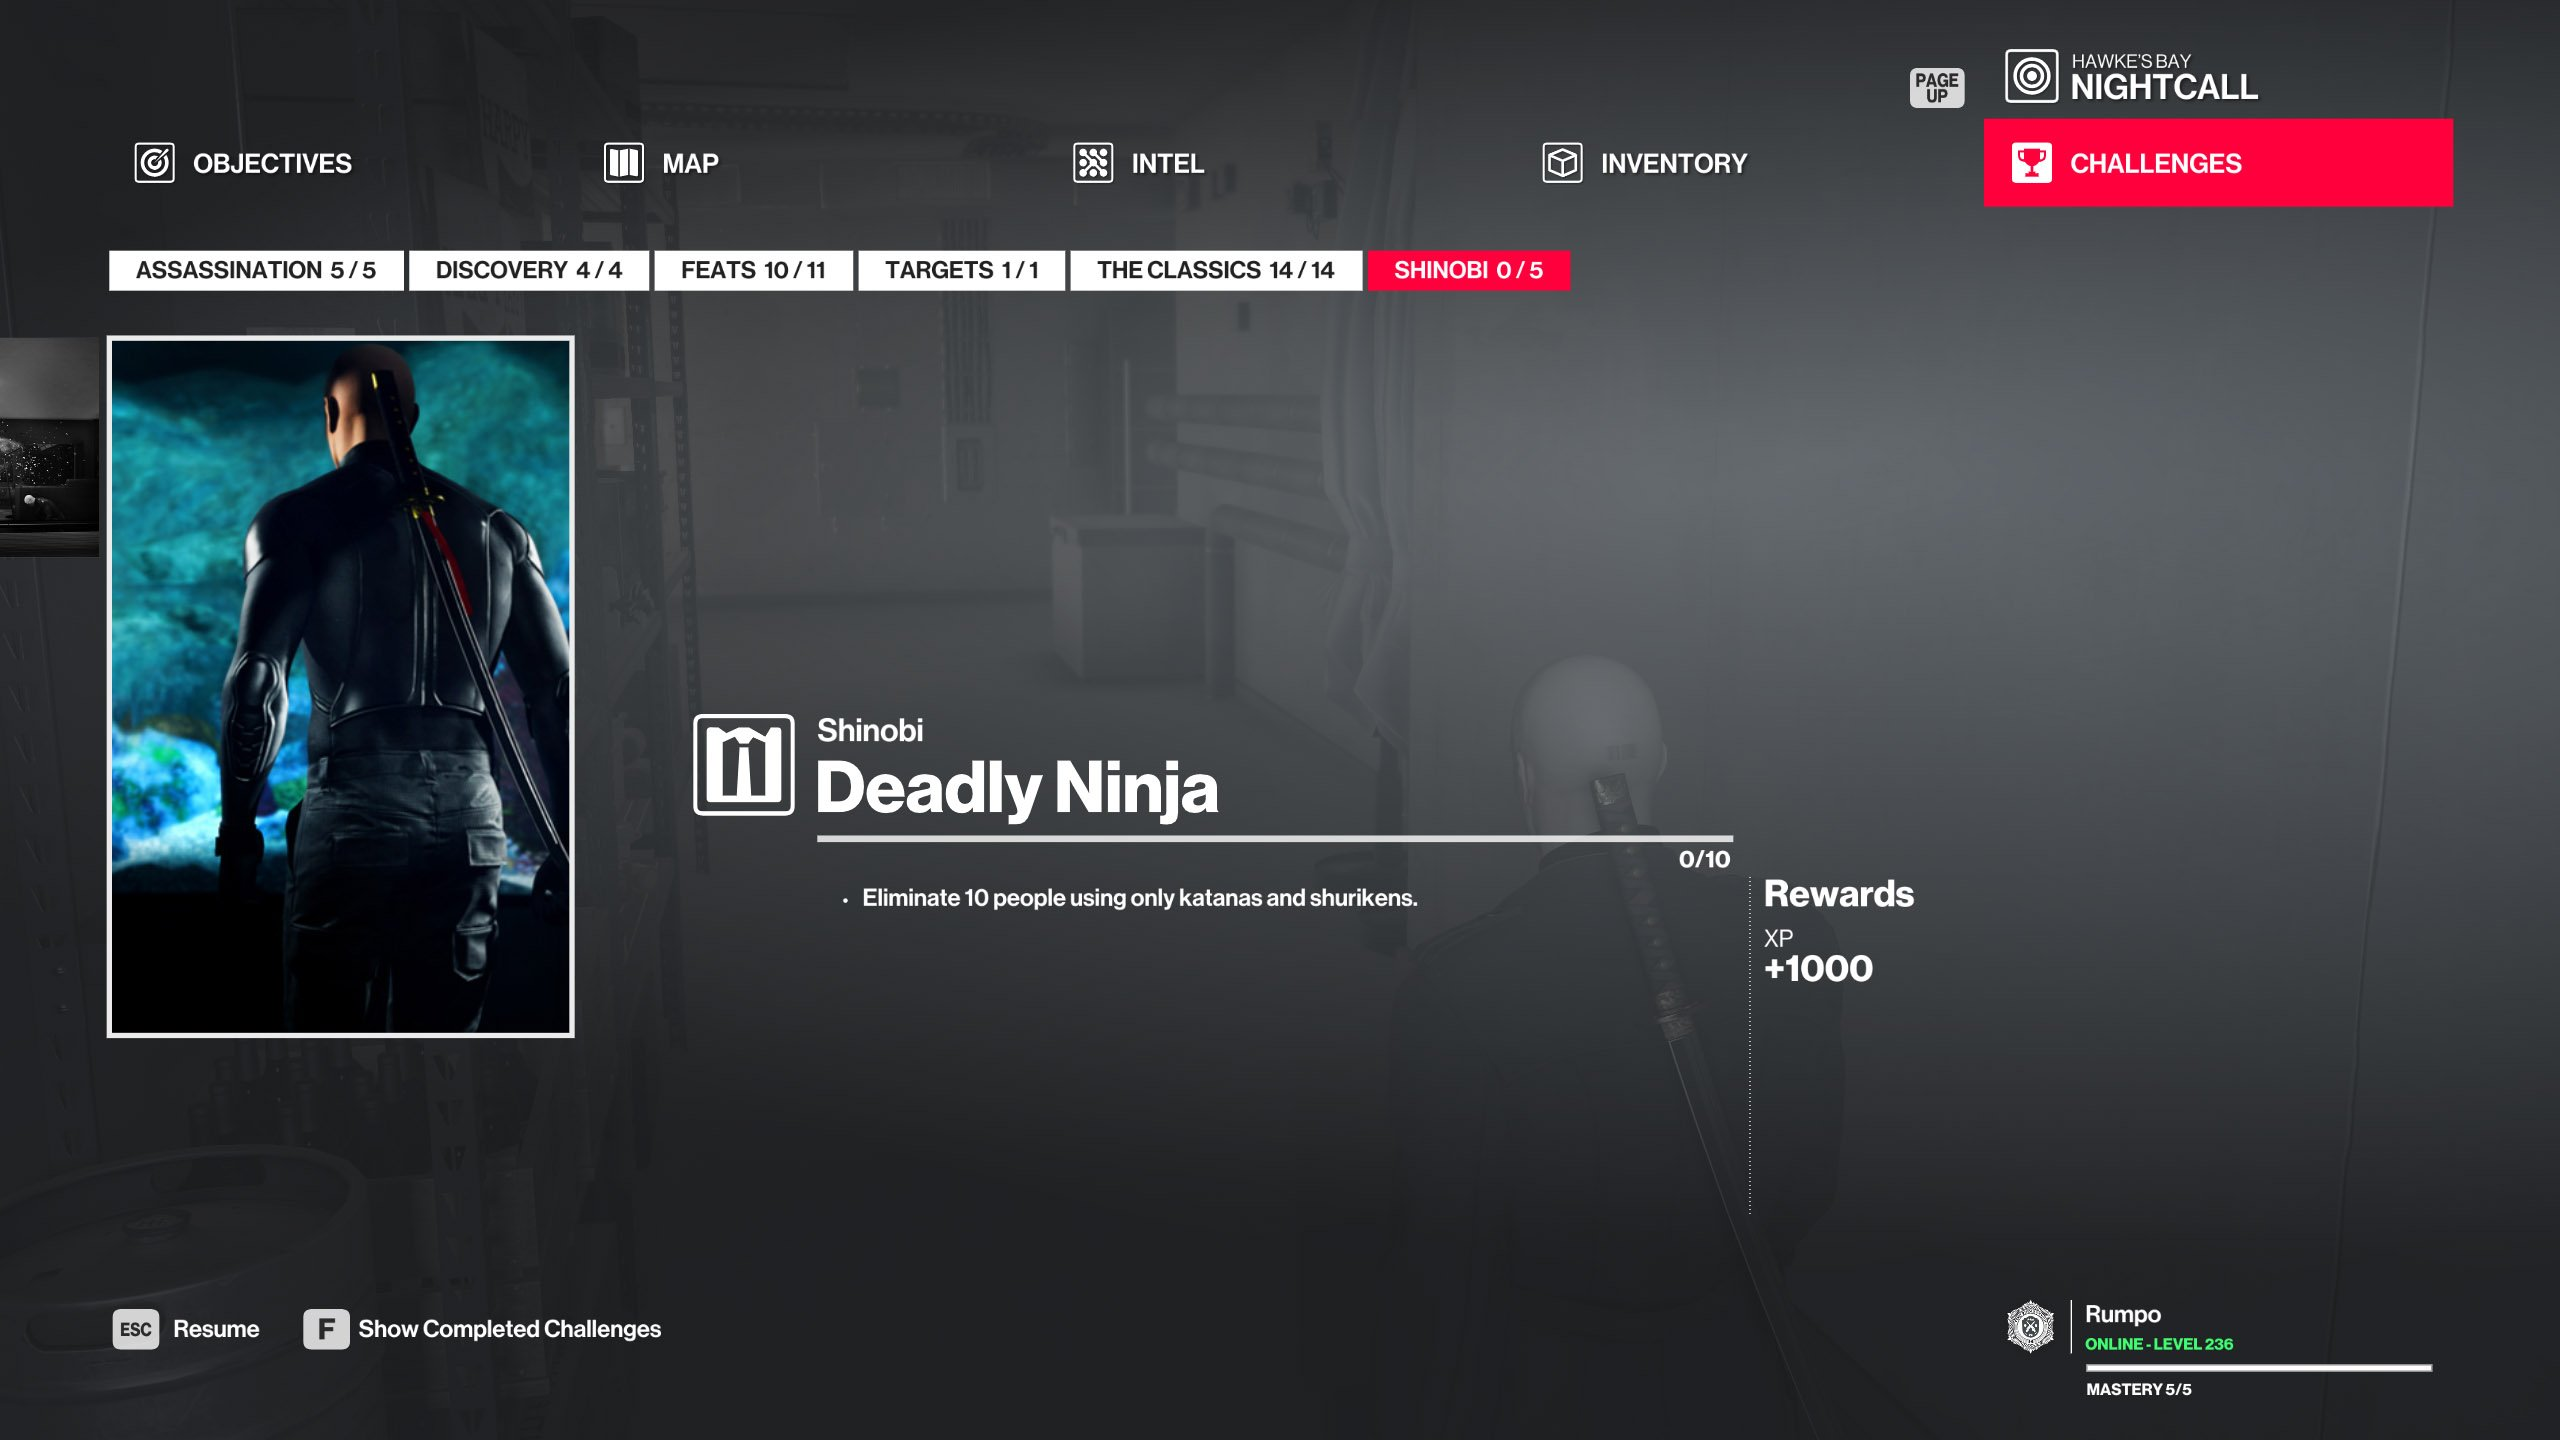 Hitman Shinobi walkthrough - Deadly Ninja challenge